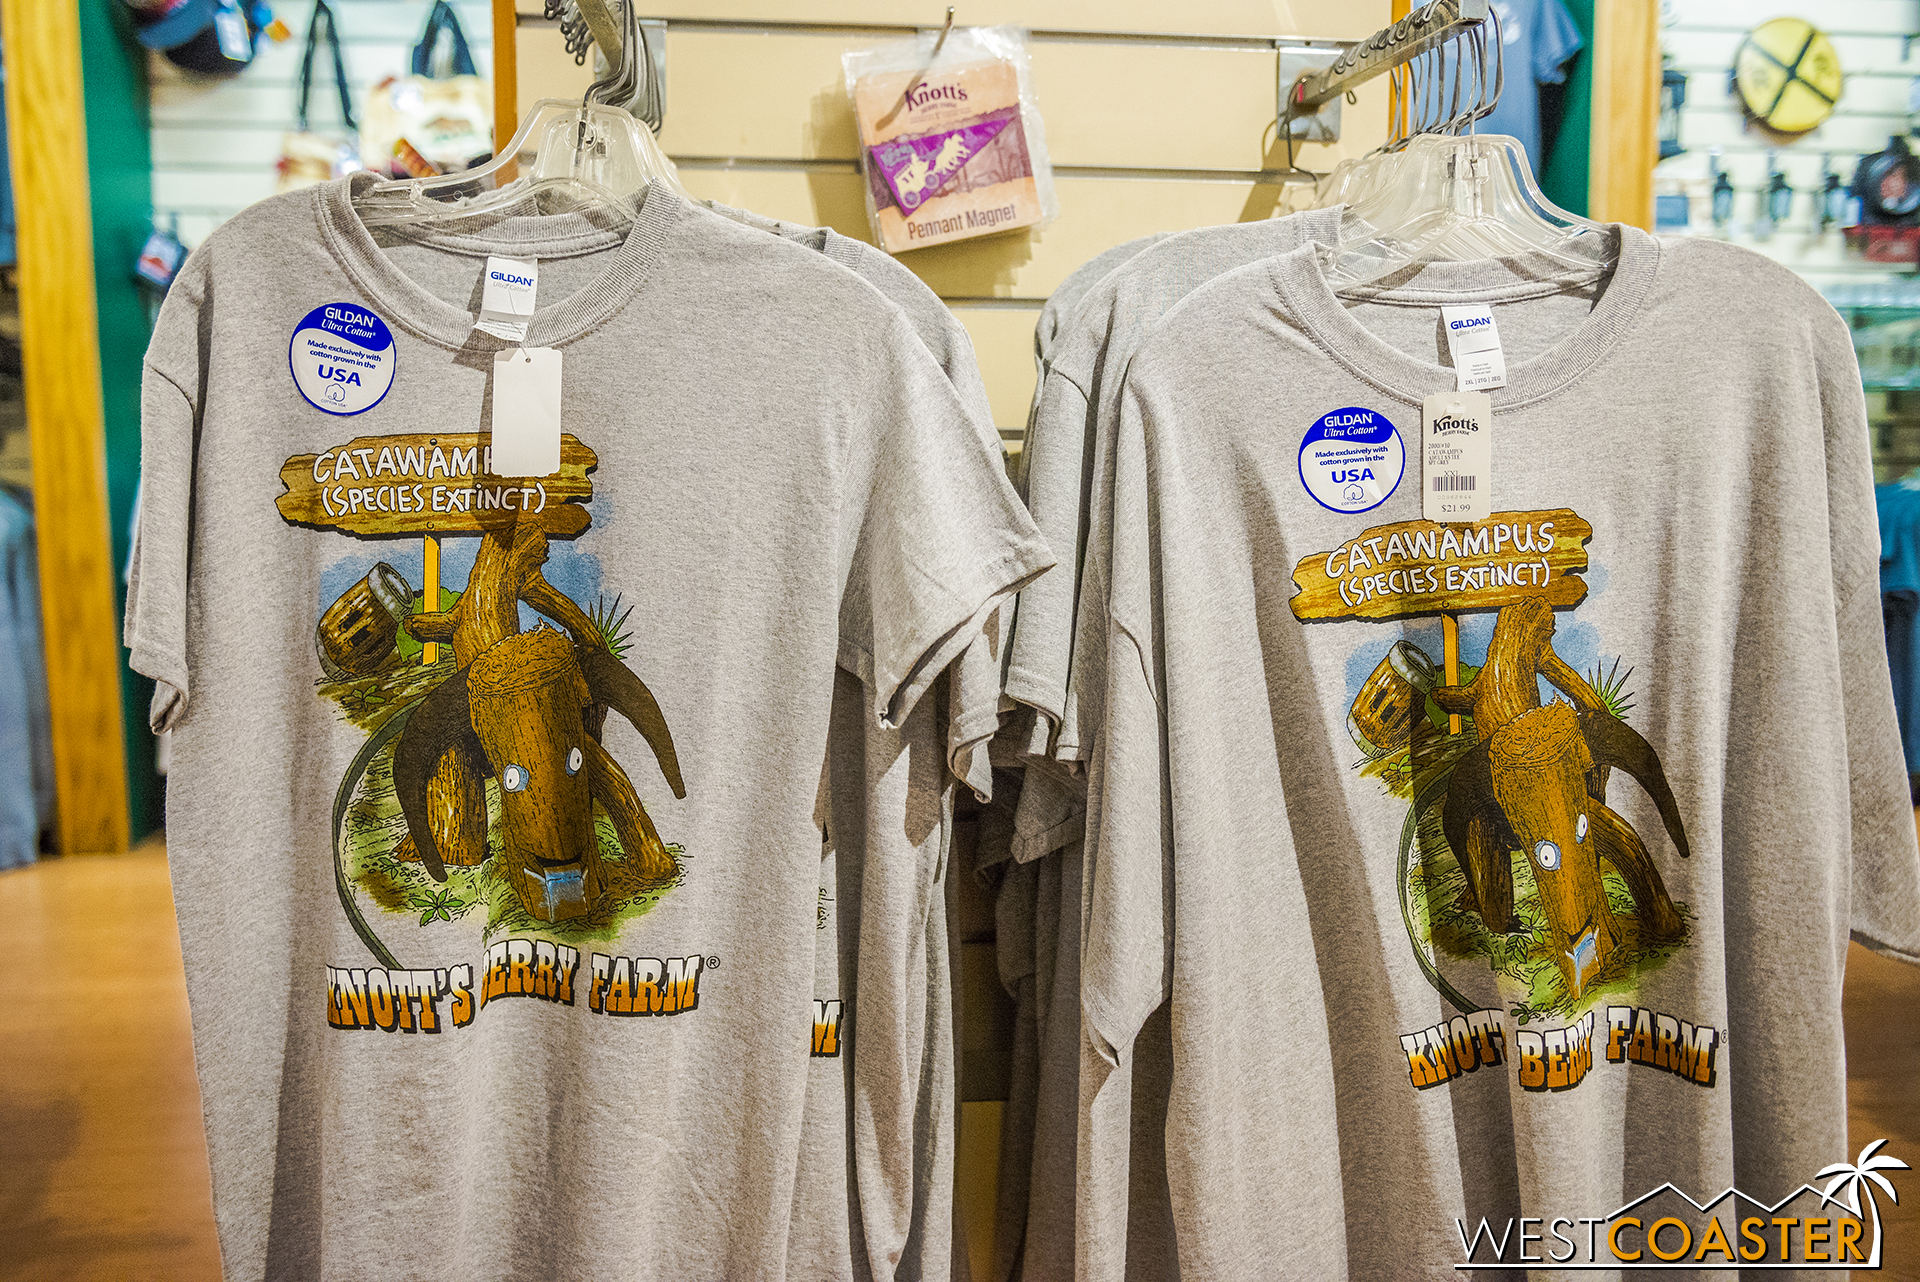 Knott's has Catawampus merchandise out and about now!